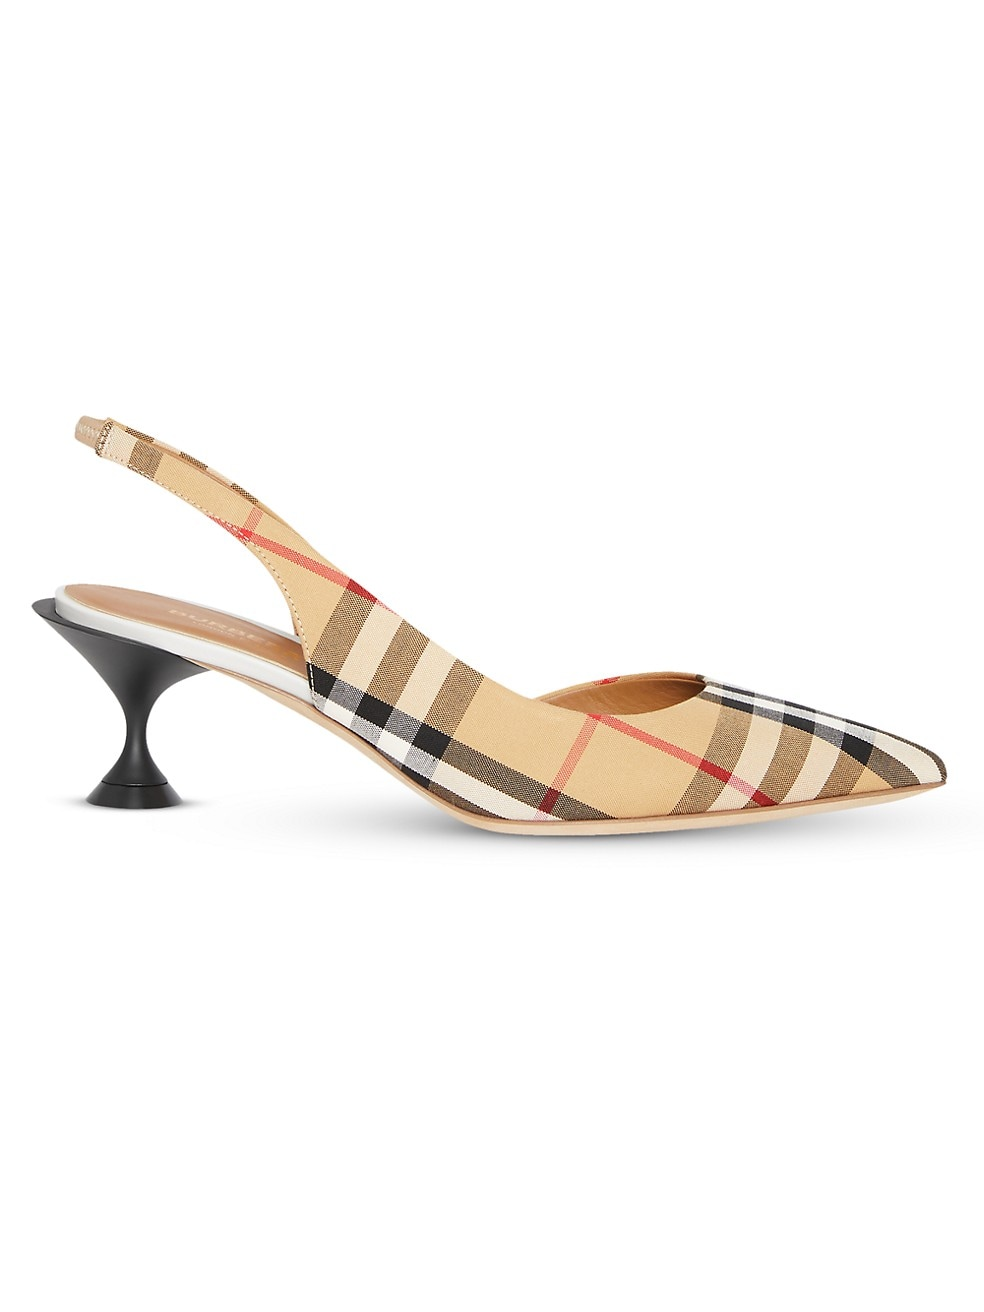 Burberry Leticia Leather Slingback Pumps